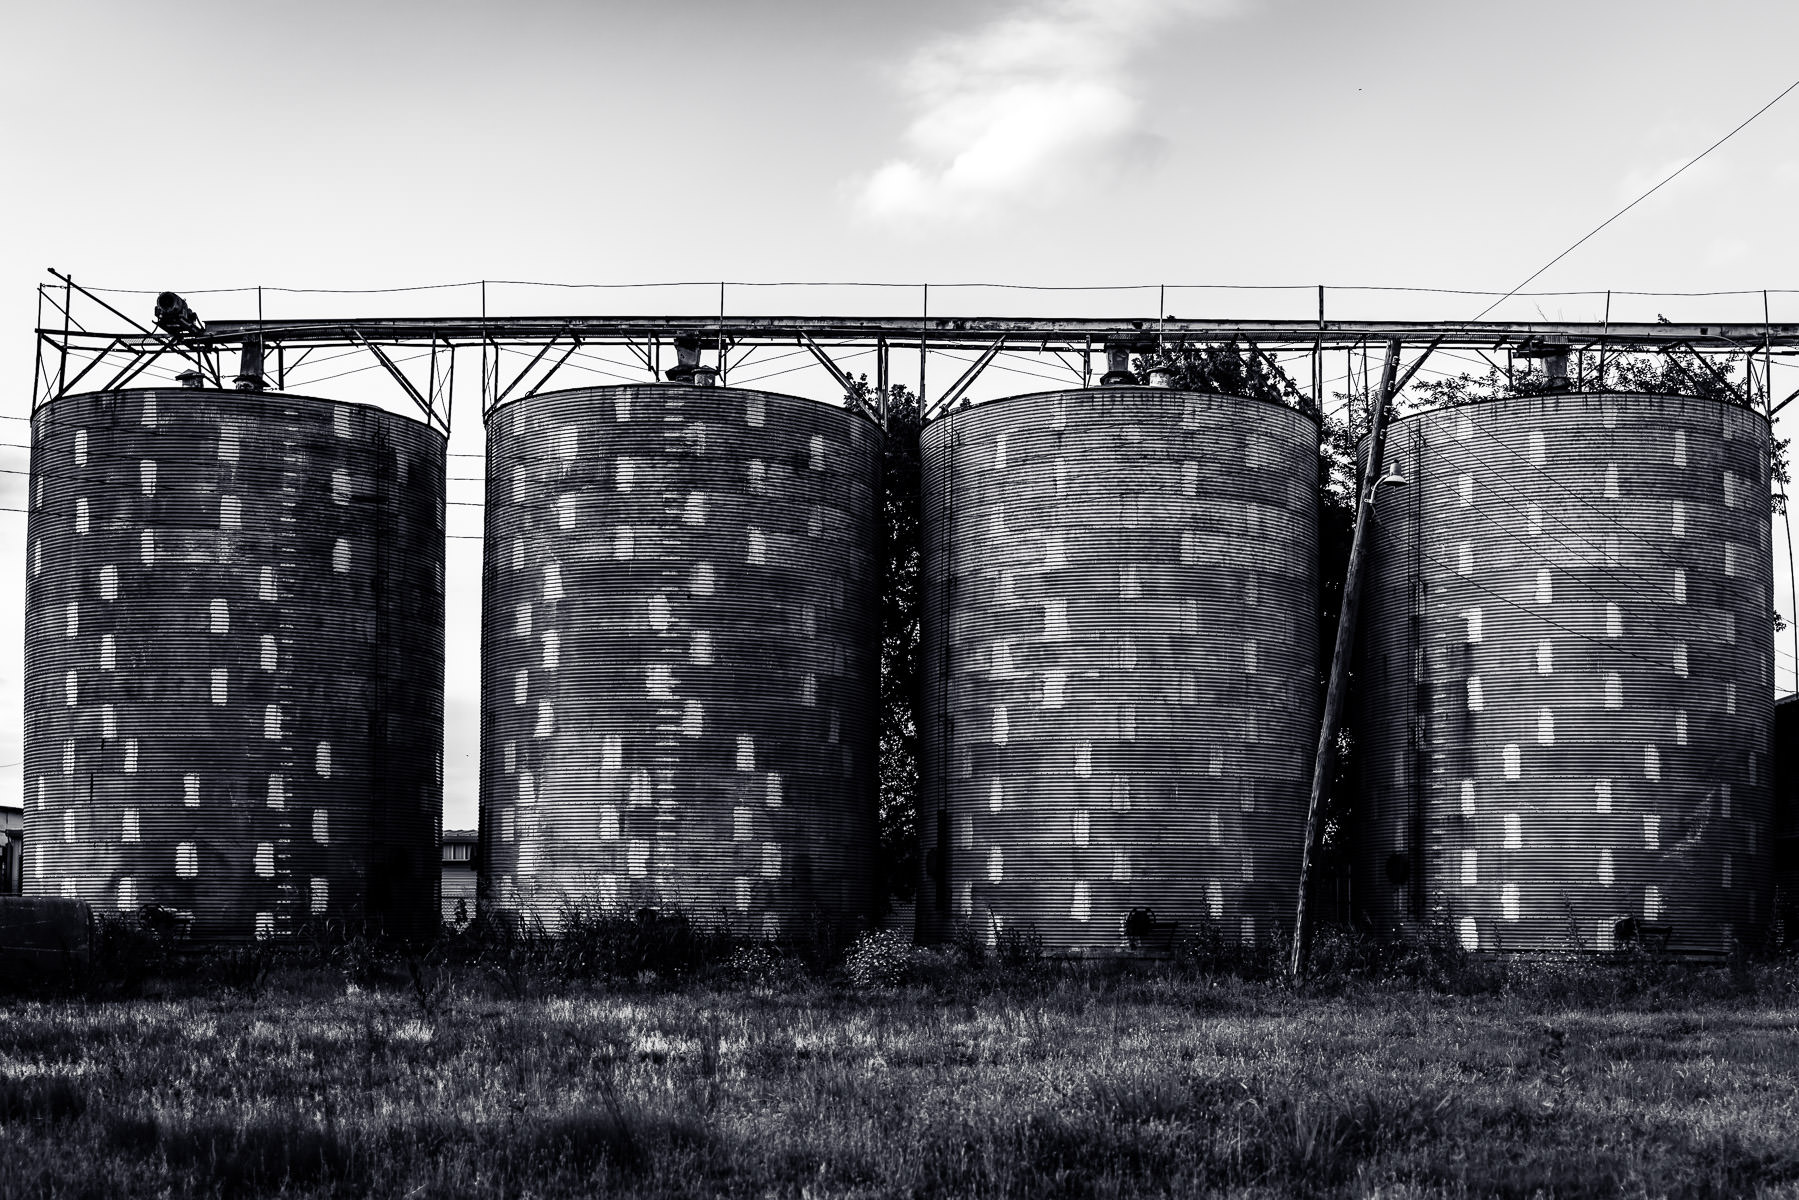 Silos in Celina, Texas.